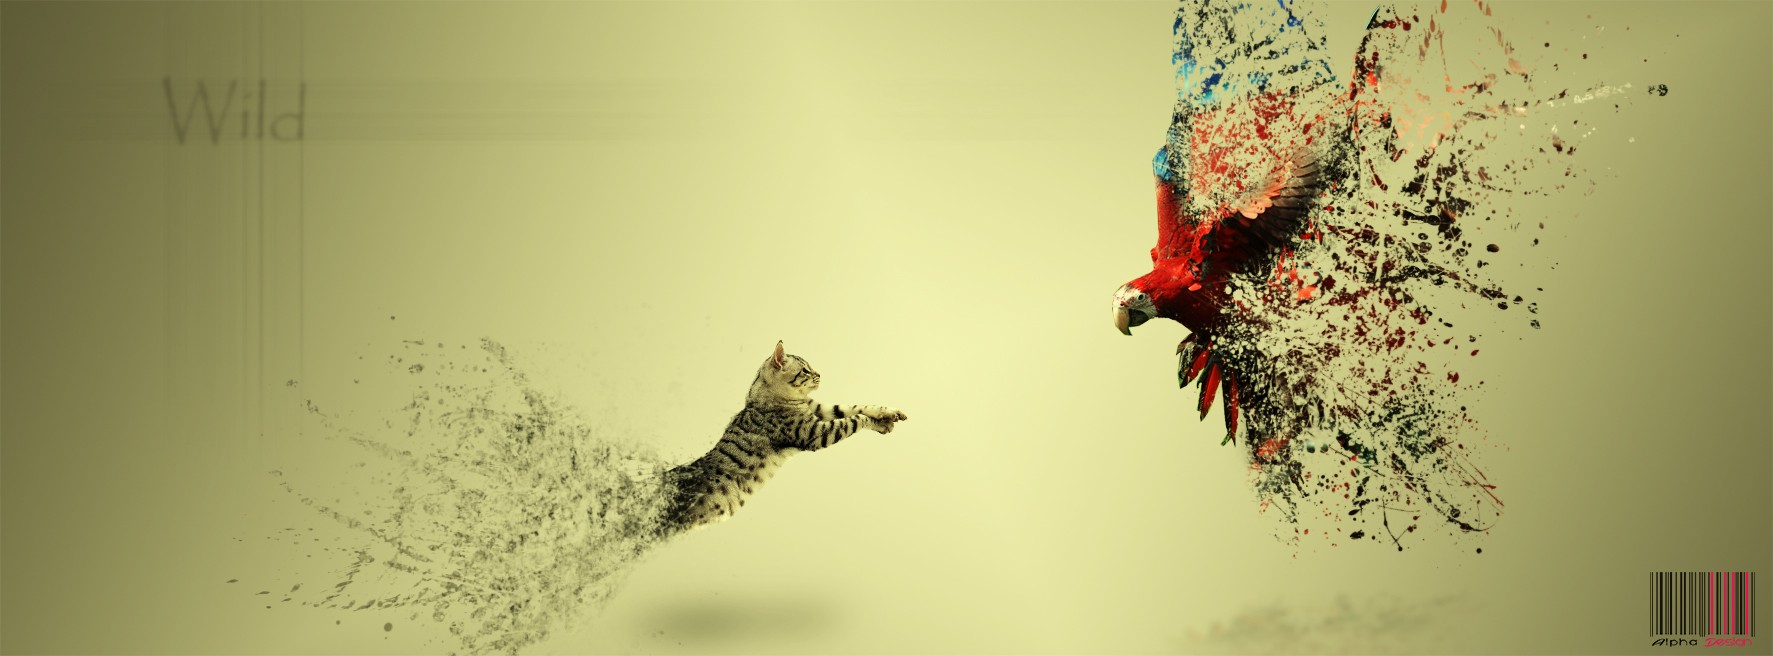 Beautiful Wild Facebook Cover Picture